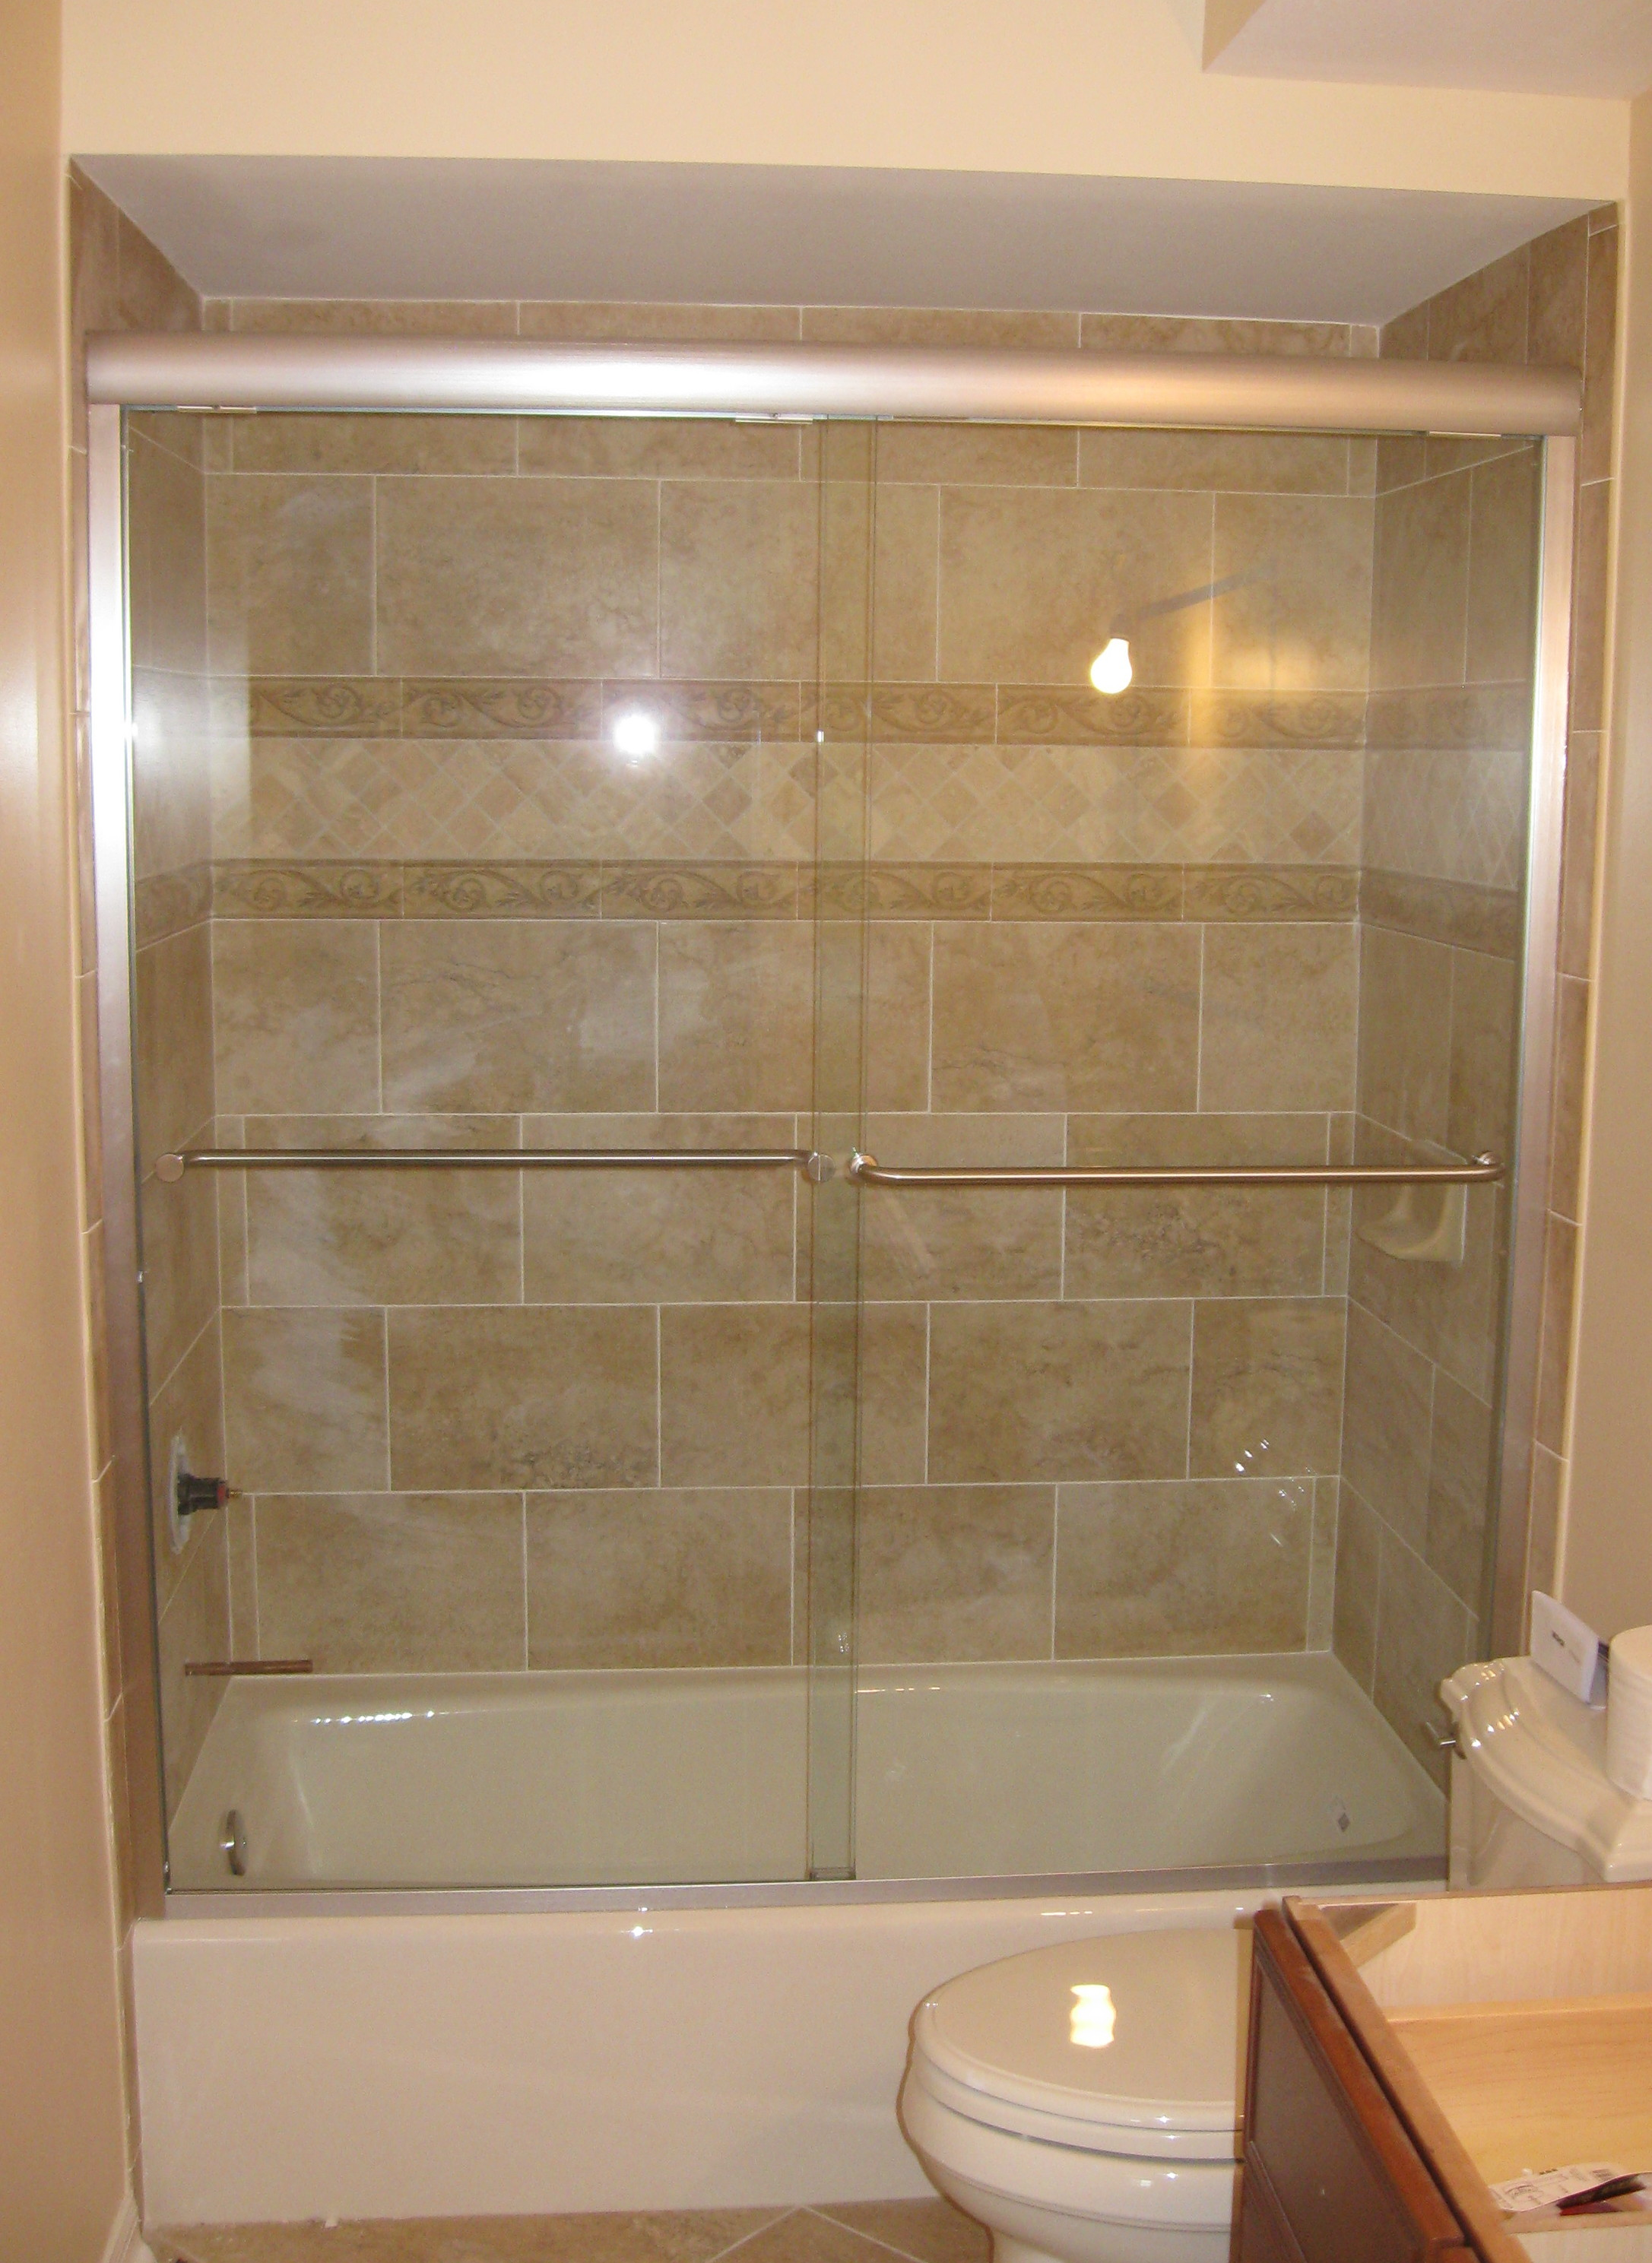 Bathroom shower doors frameless - Deluxe Alumax Tub Slider Brushed Nickel Hardware Clear Glass Semi Frameless Door